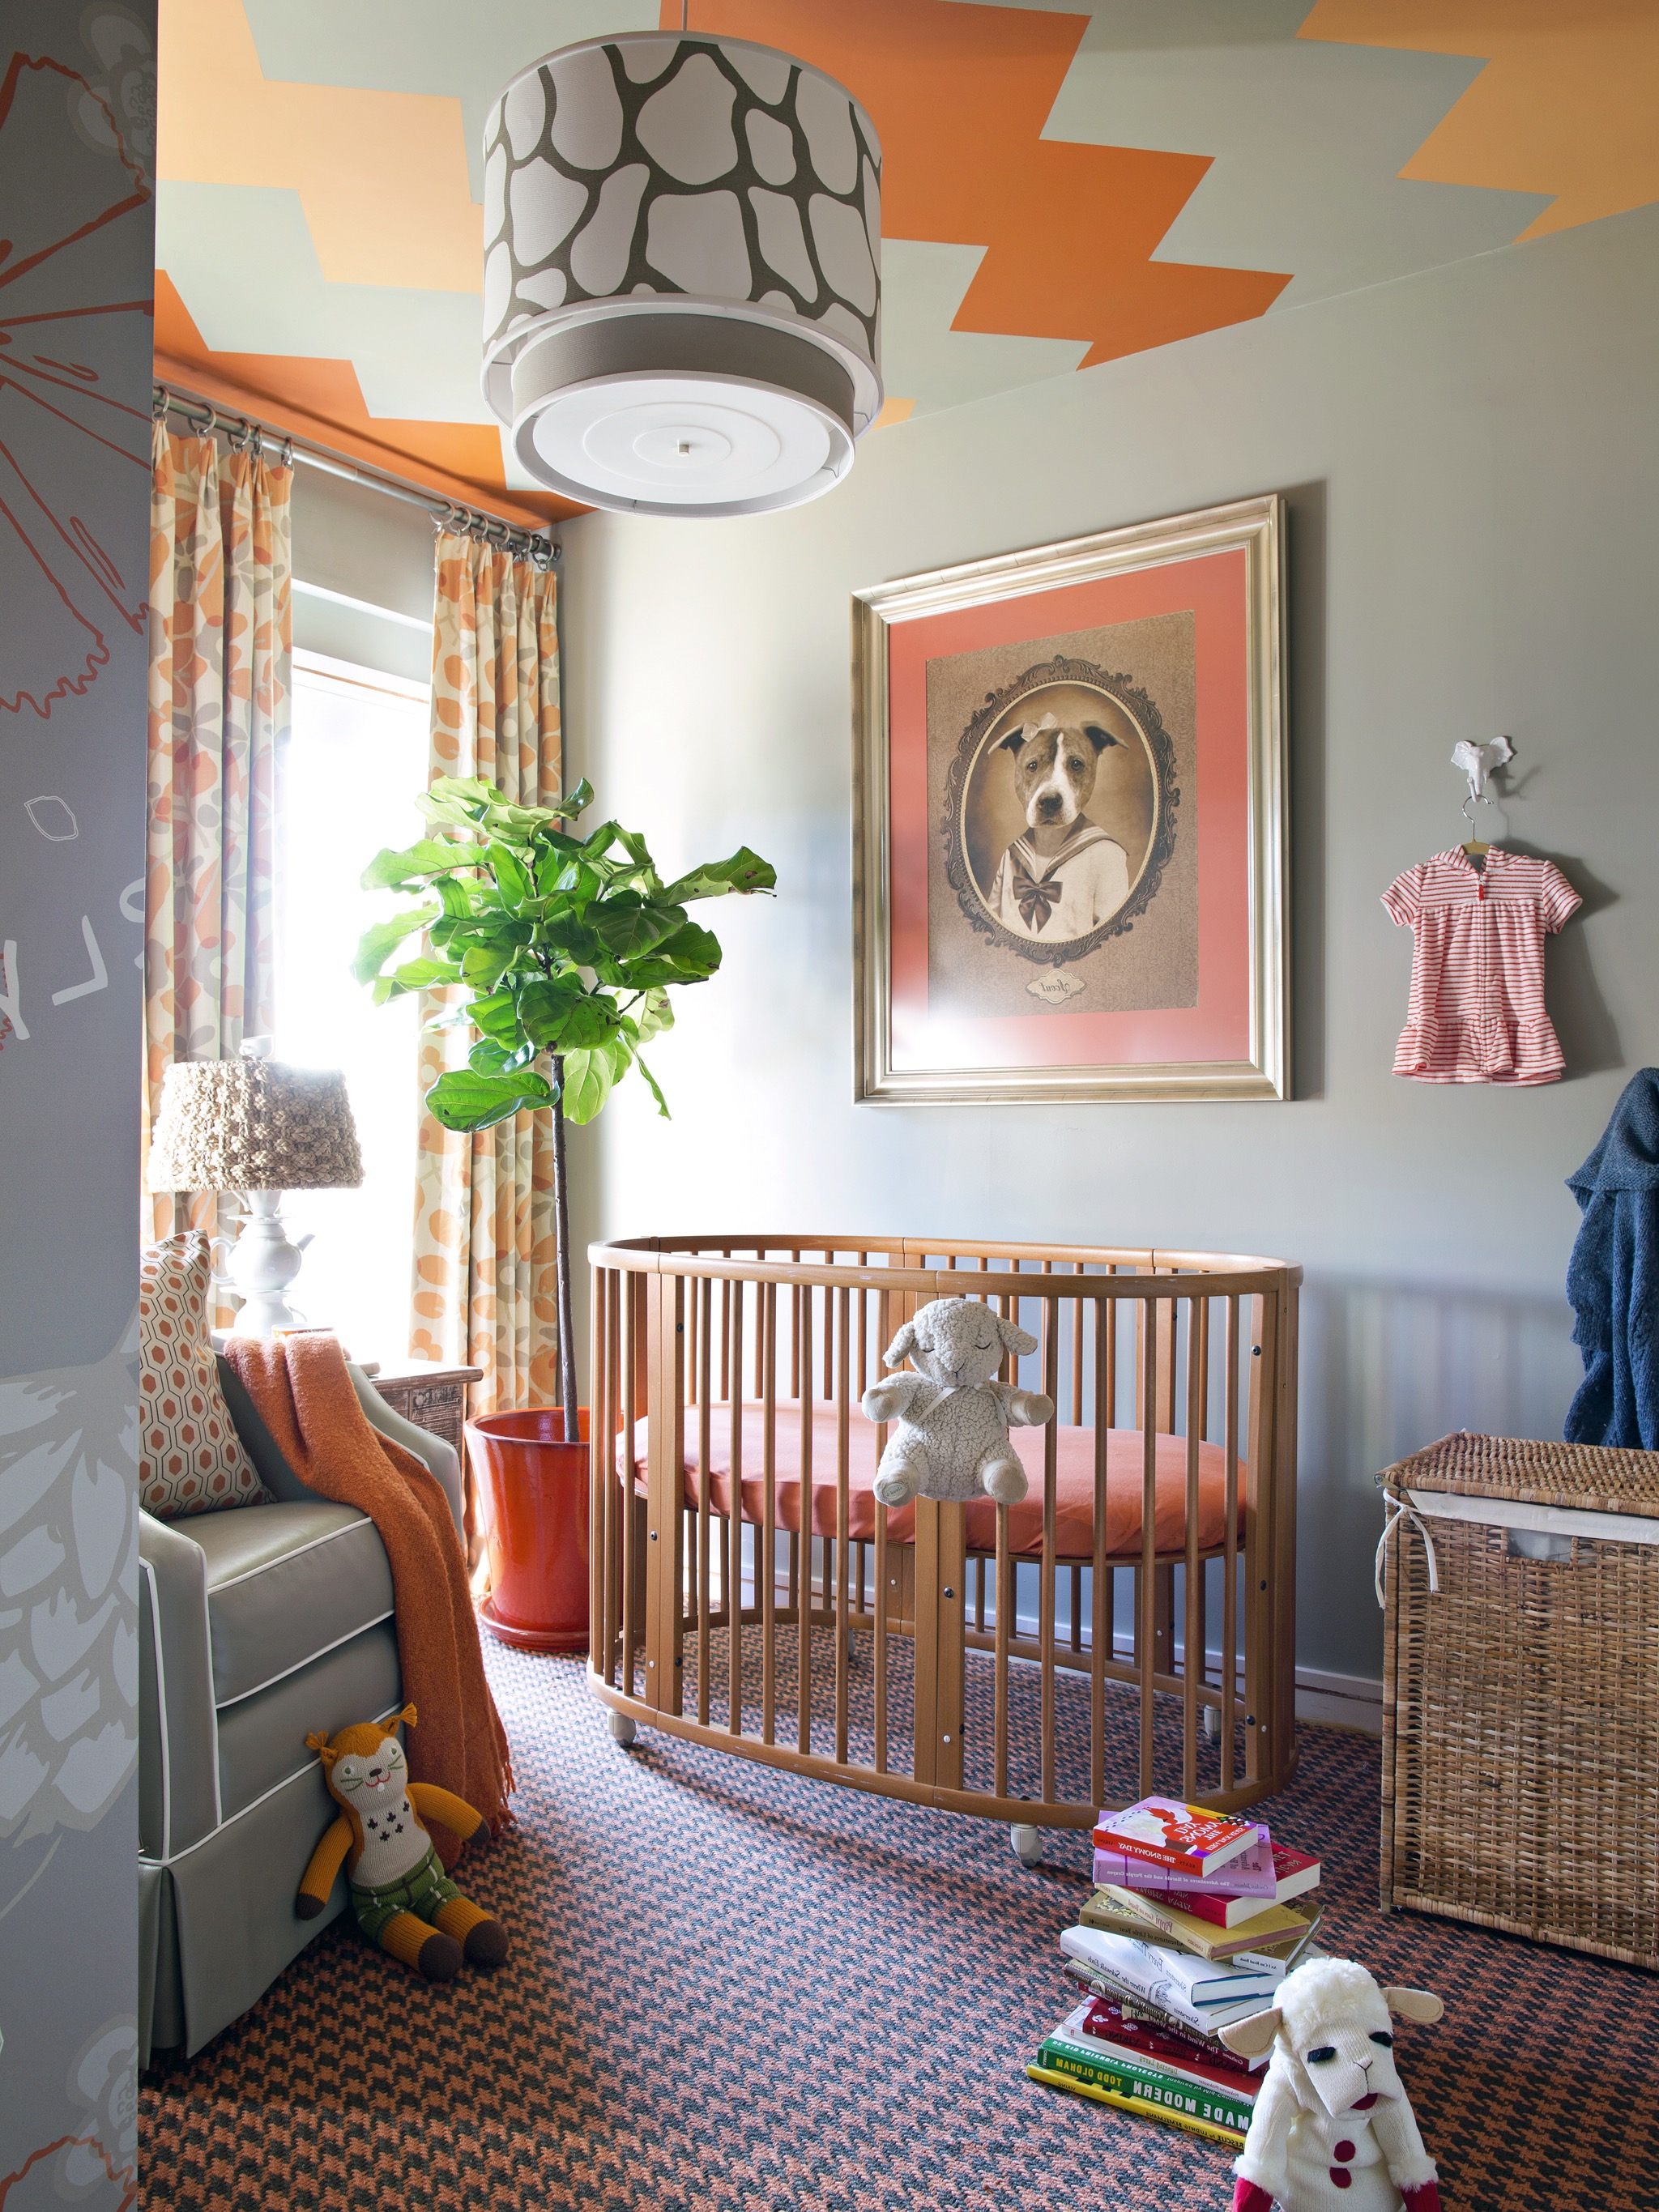 Eclectic Taupe Nursery With Orange Accents And Painted Ceiling (Image 12 of 33)